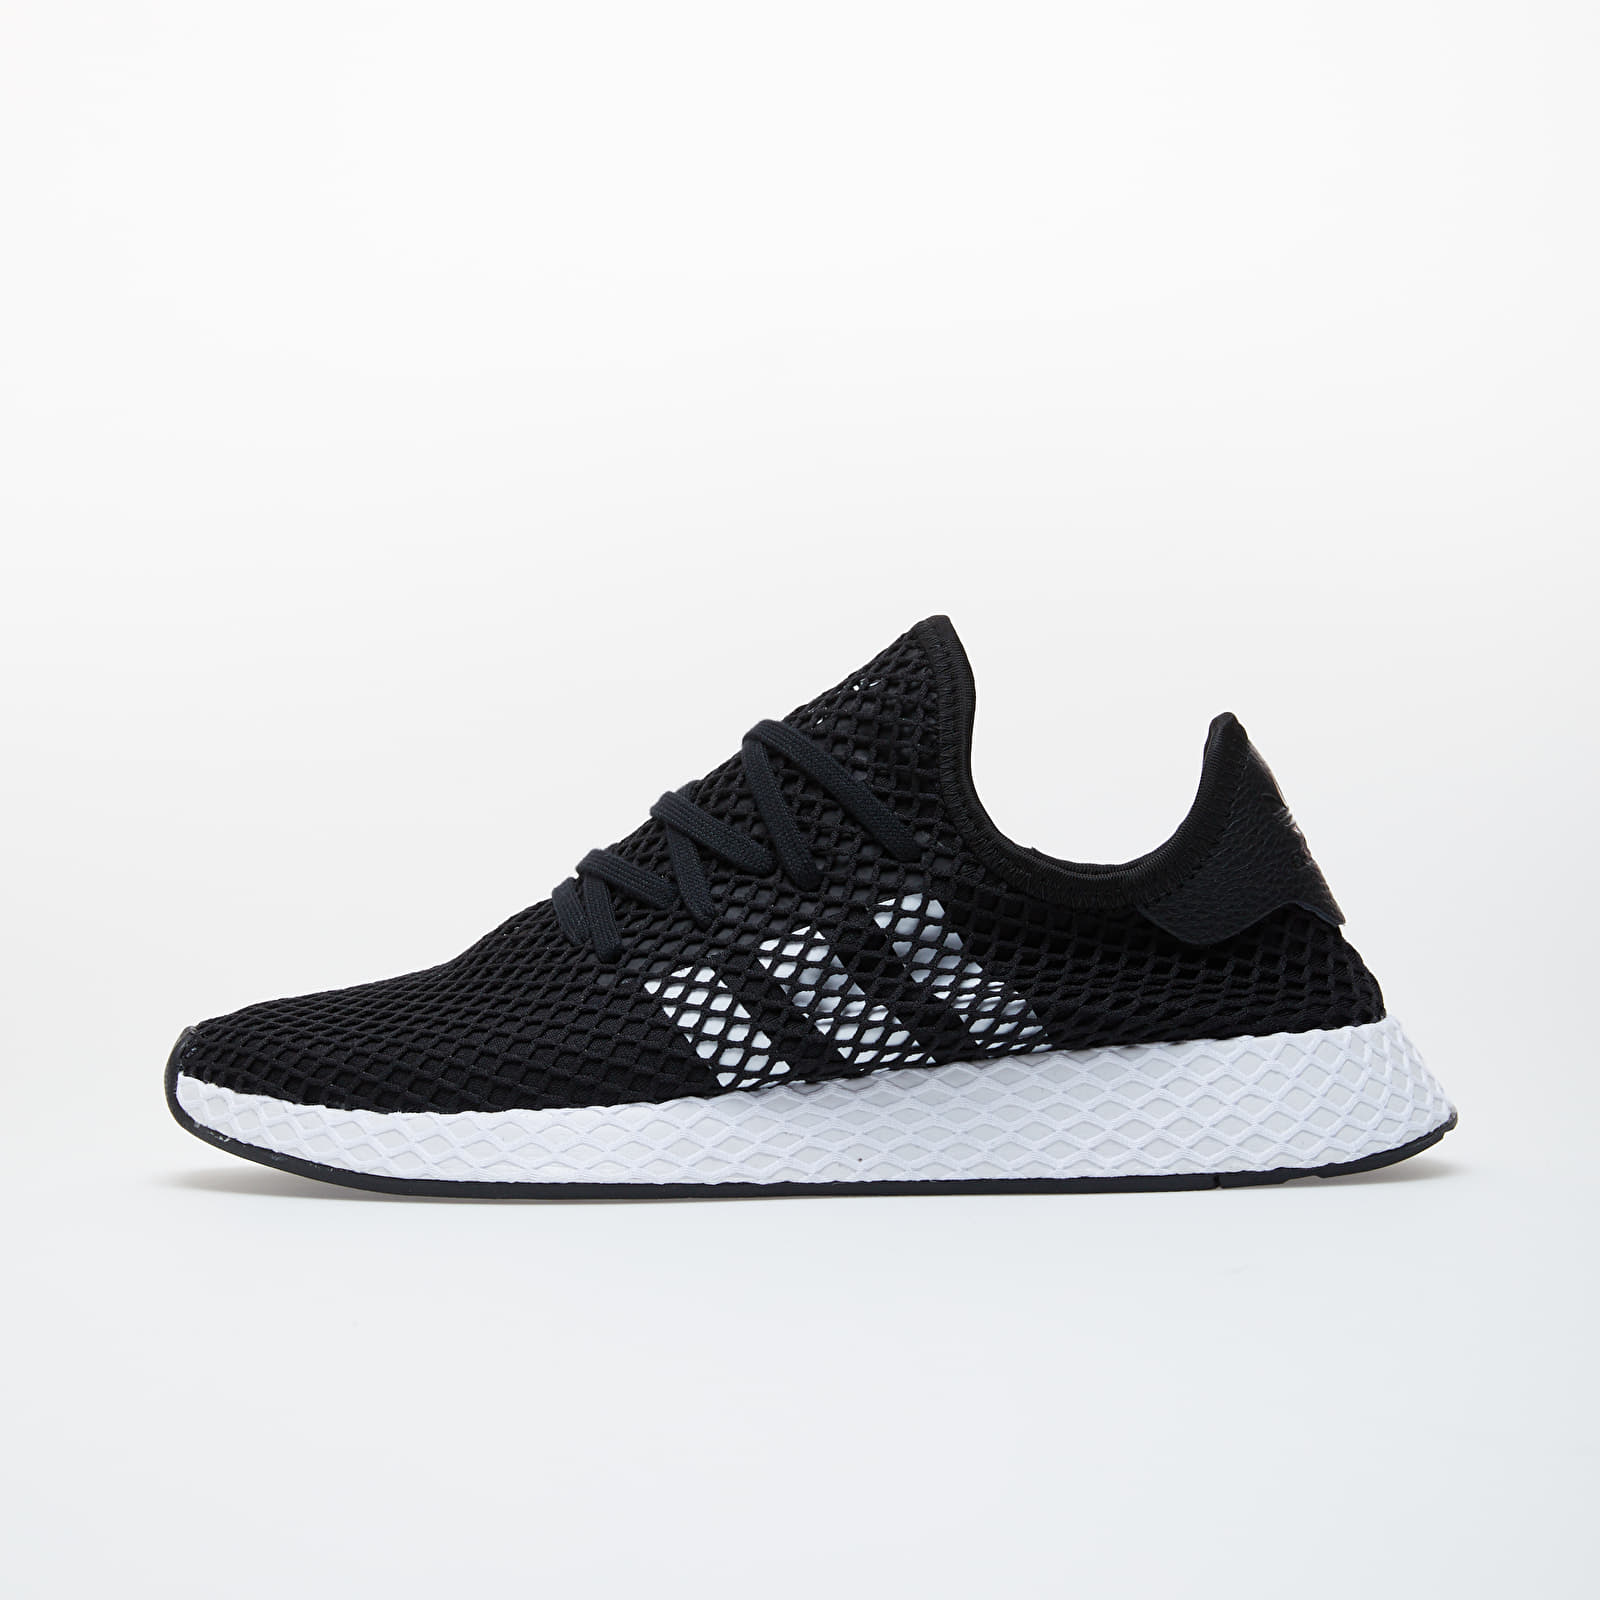 Men's shoes adidas Deerupt Runner Core Black/ Ftwr White/ Core Black